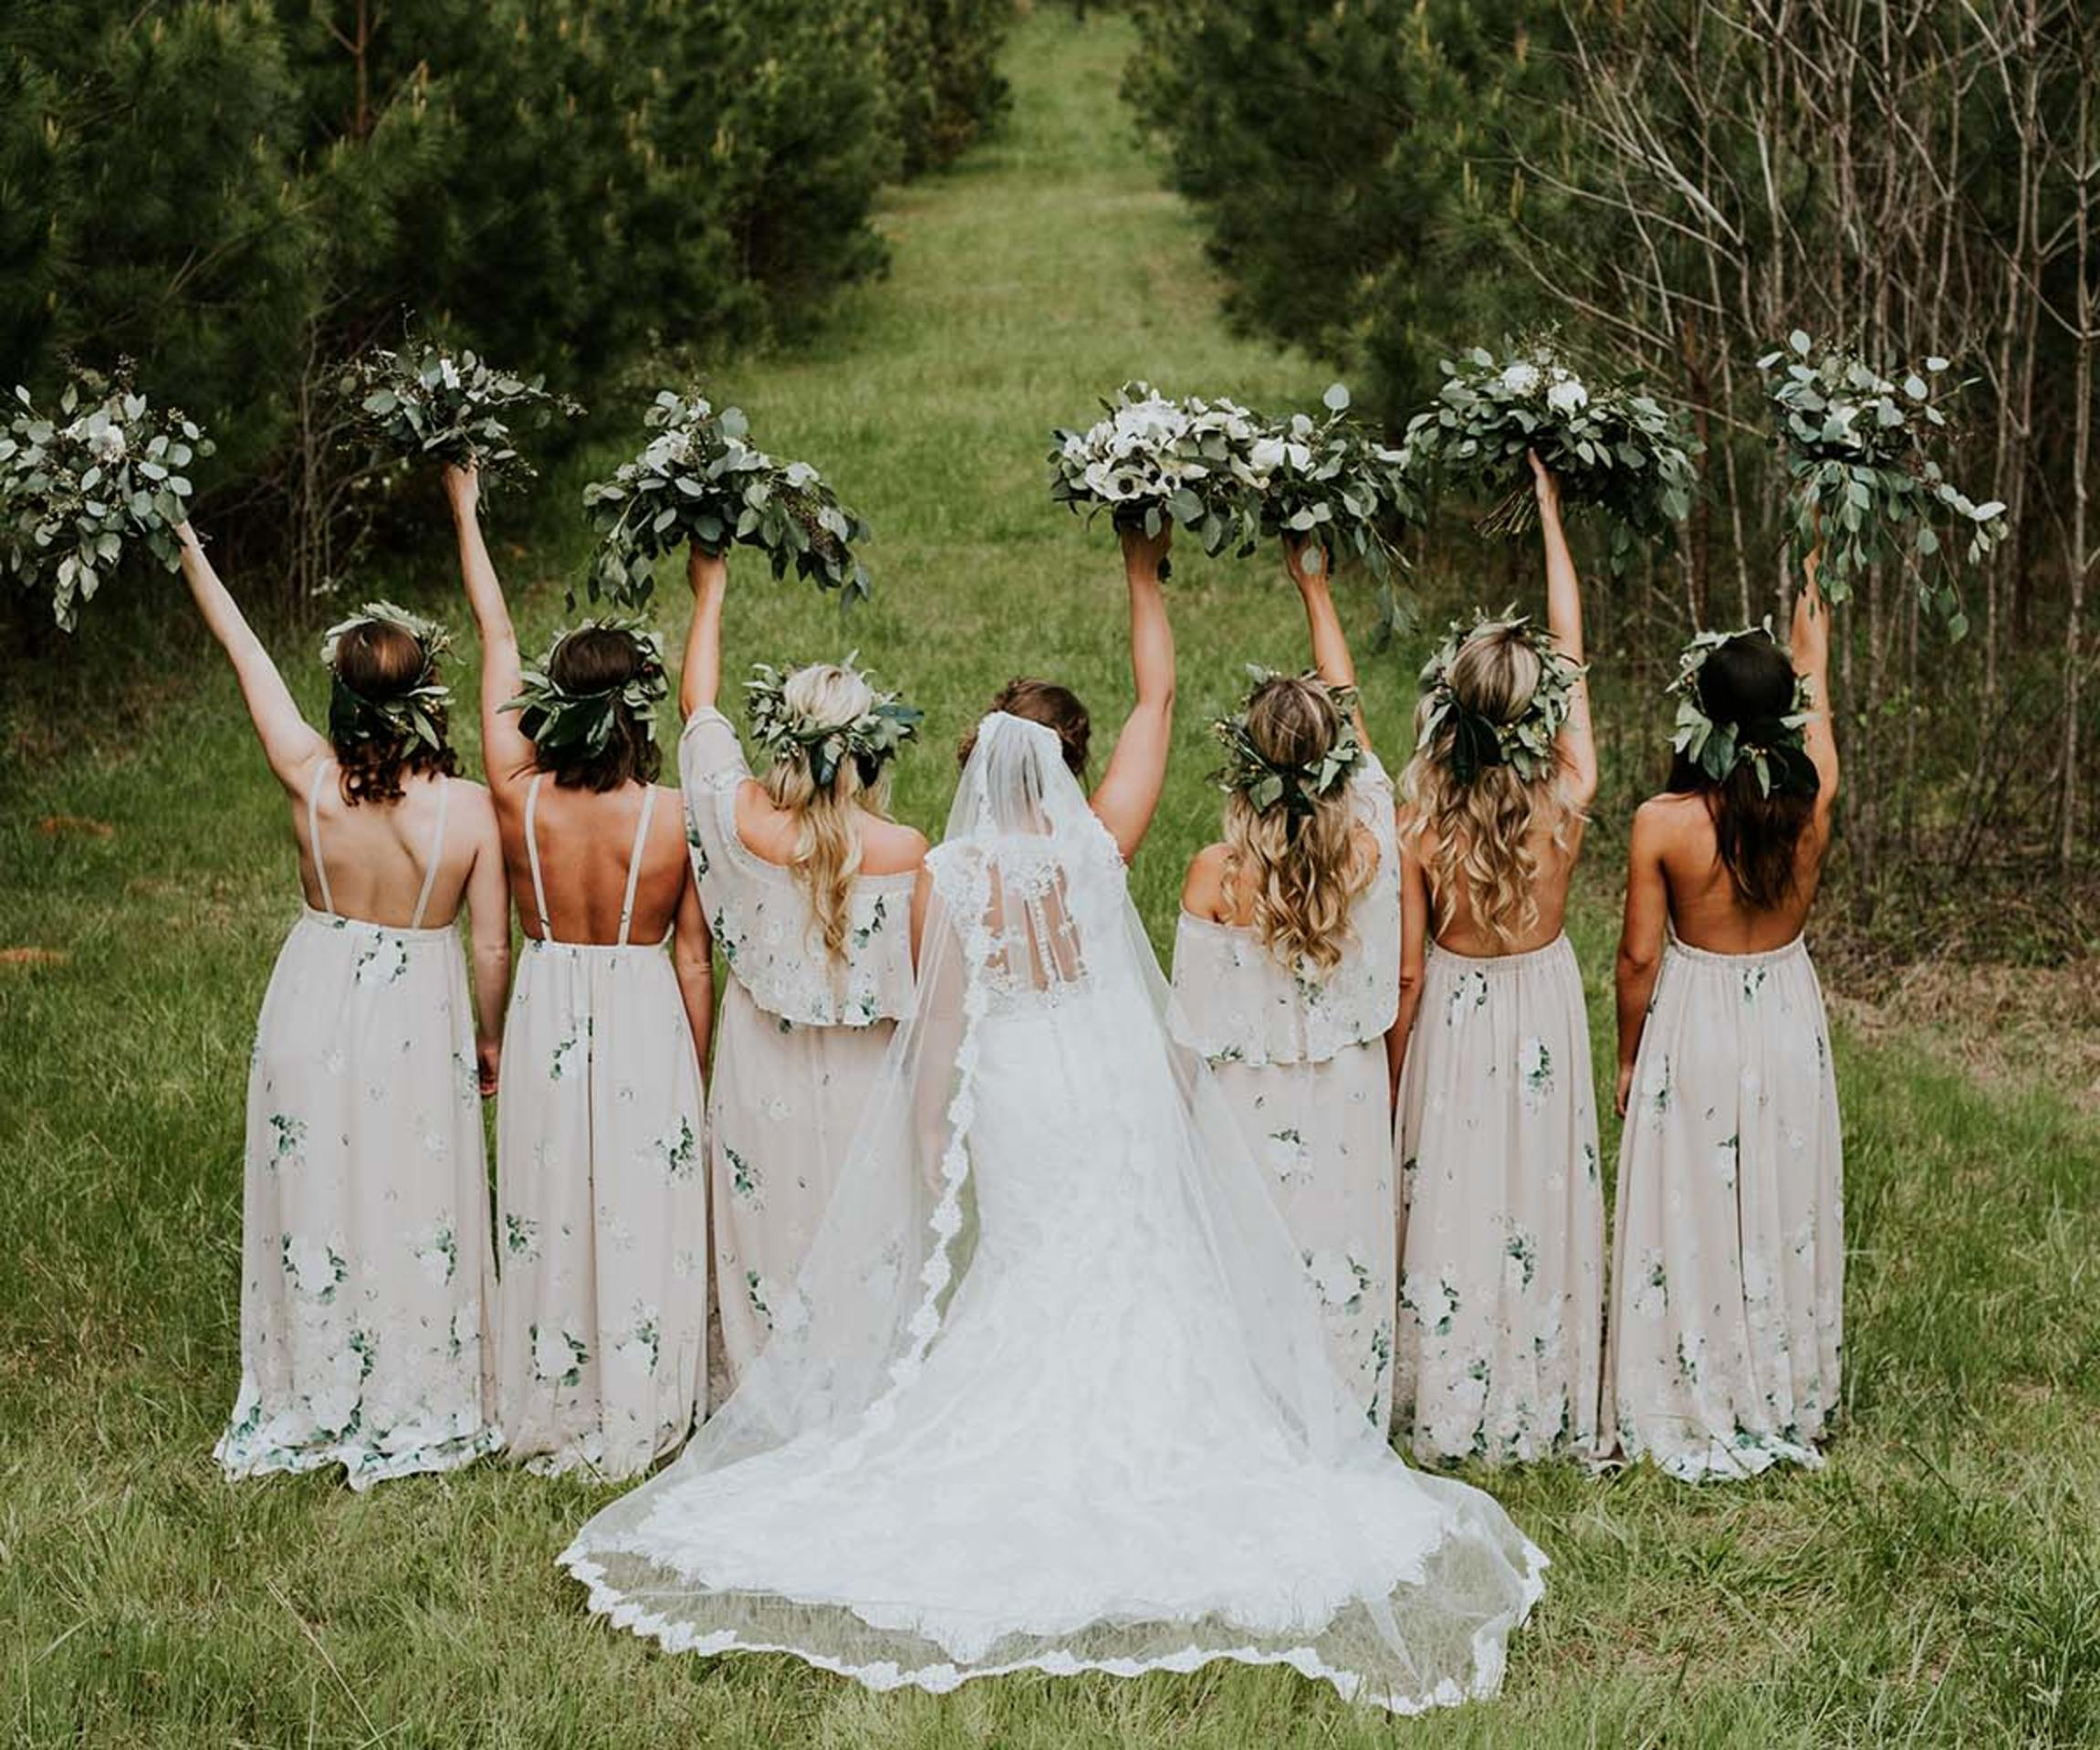 Best Wedding Photographers.How To Build A Wedding Website And Photography Portfolio